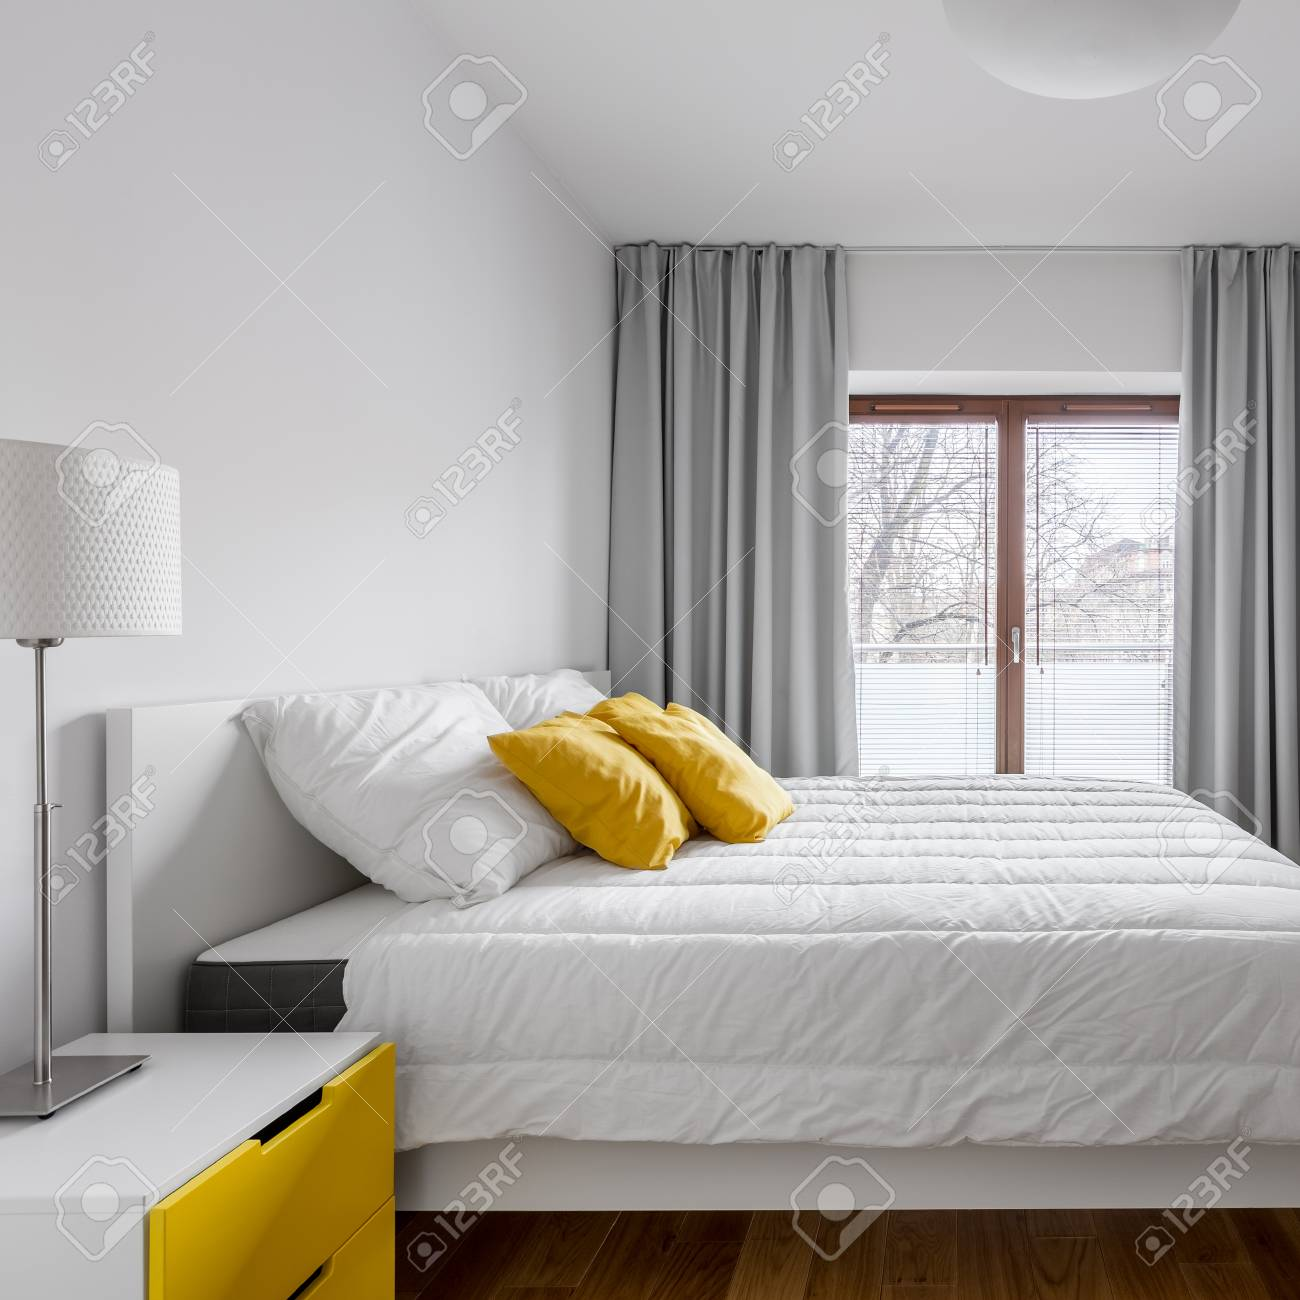 White Bedroom With Double Bed Window Gray Curtains Lamp And Stock Photo Picture And Royalty Free Image Image 95877024